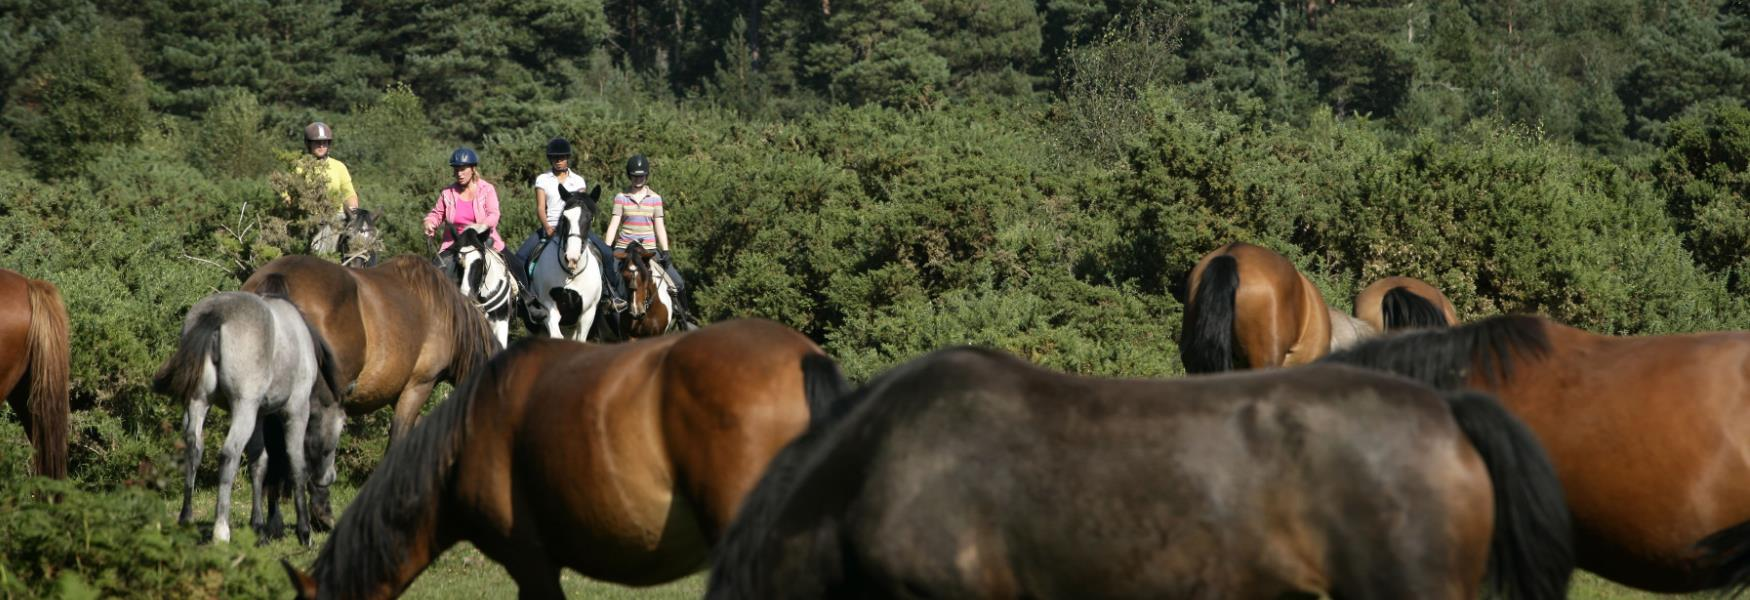 Horse Riding Activity through the forest in the new forest